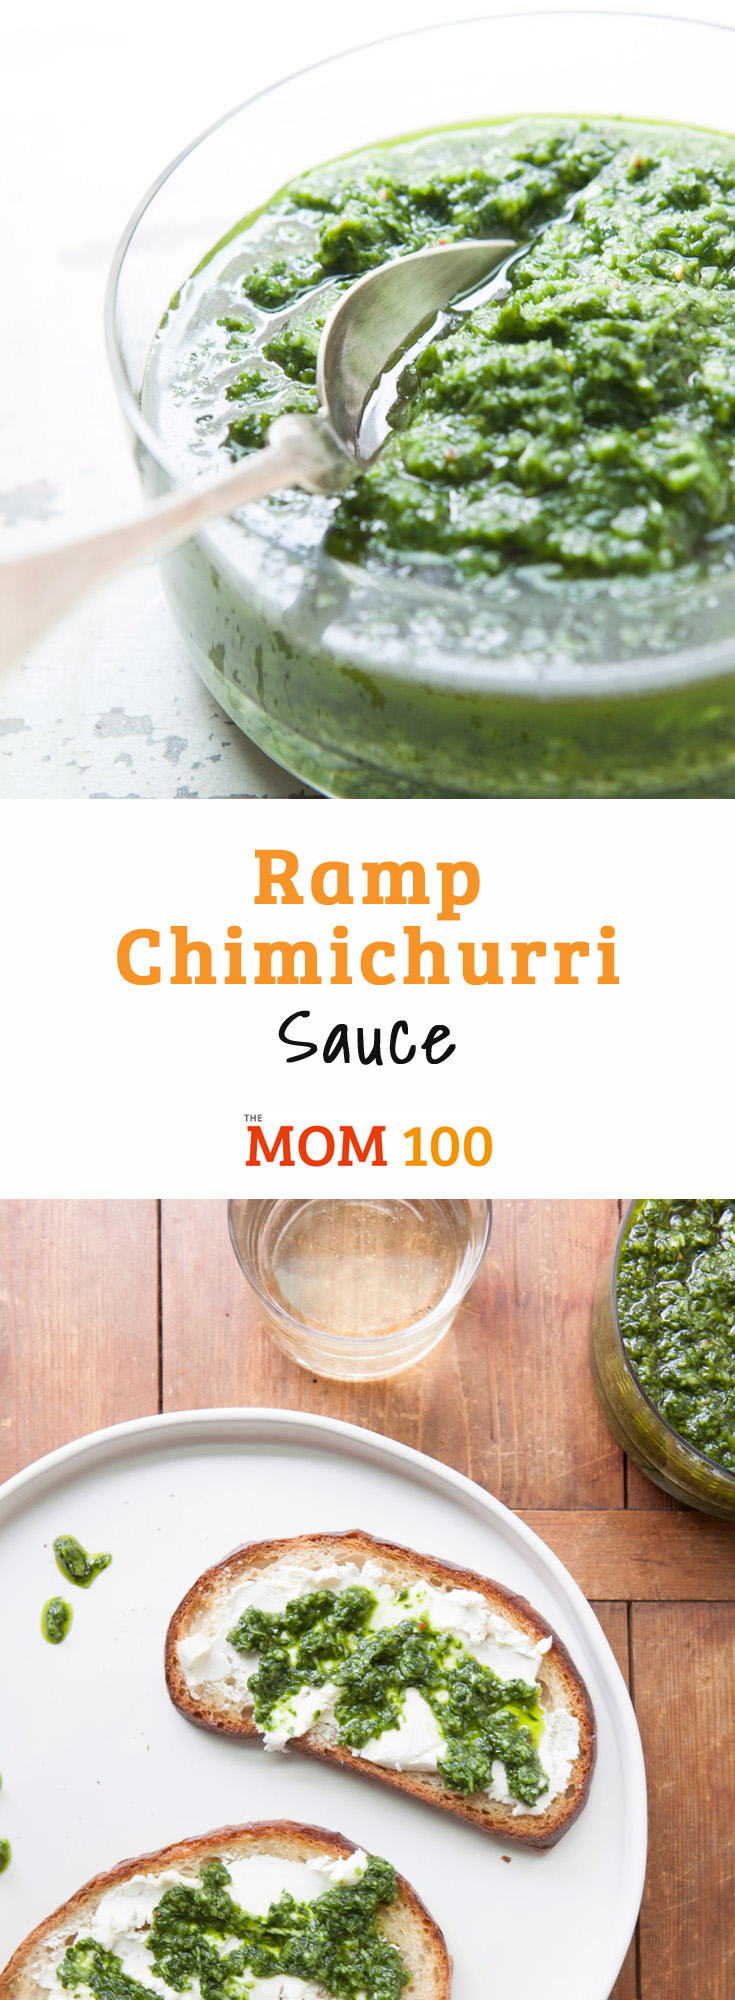 Ramp Chimichurri Sauce: Chimichurri sauce is a classic Argentinean sauce, typically served with steak. In this variation, spring ramps are used as a substitute for parsley and garlic.